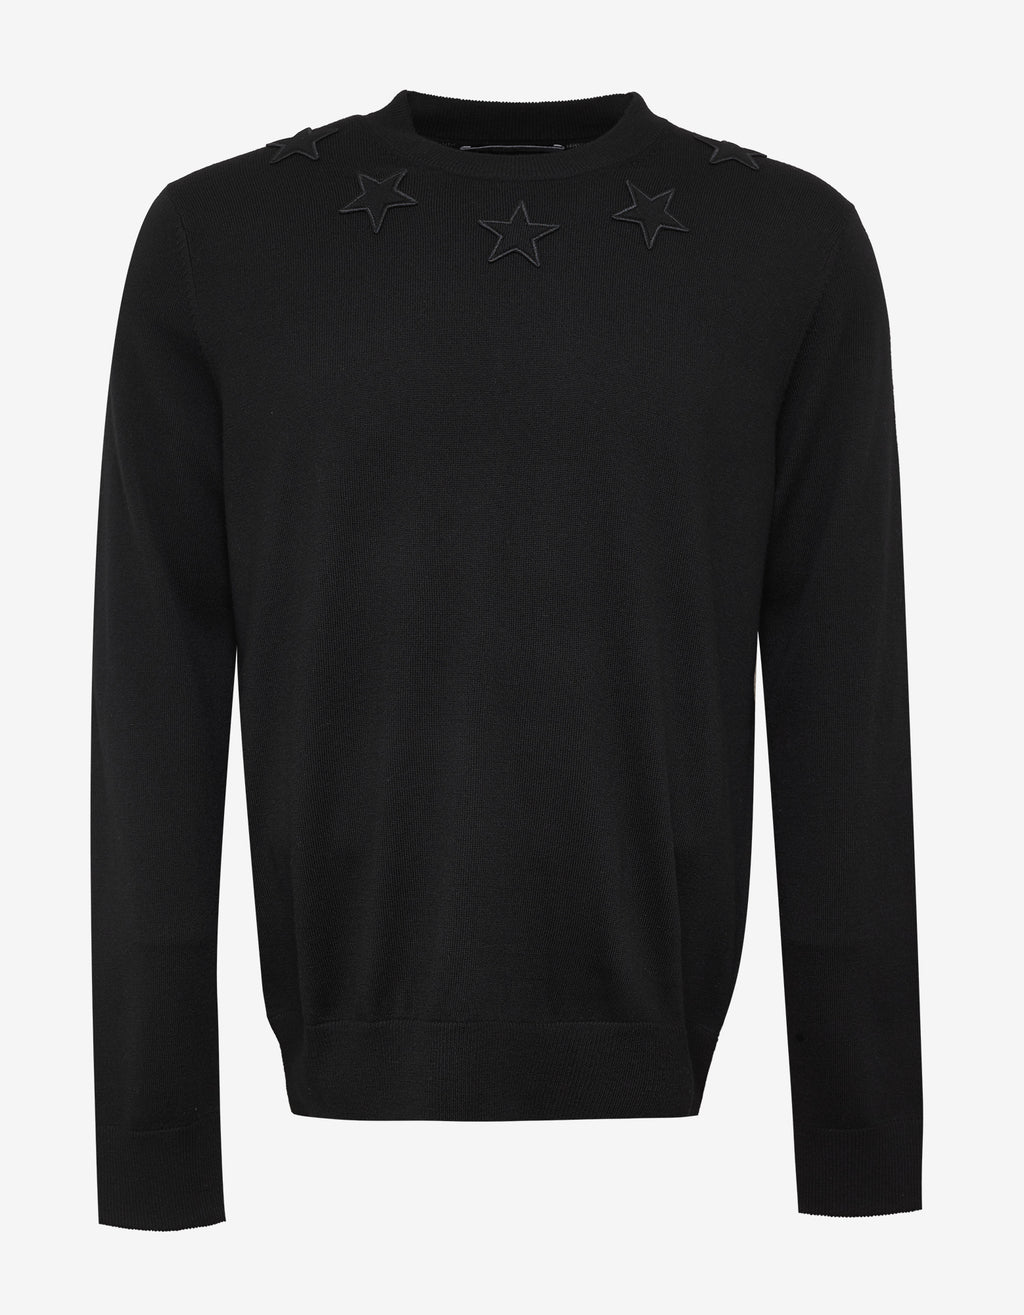 Black Wool Sweater with Tonal Stars